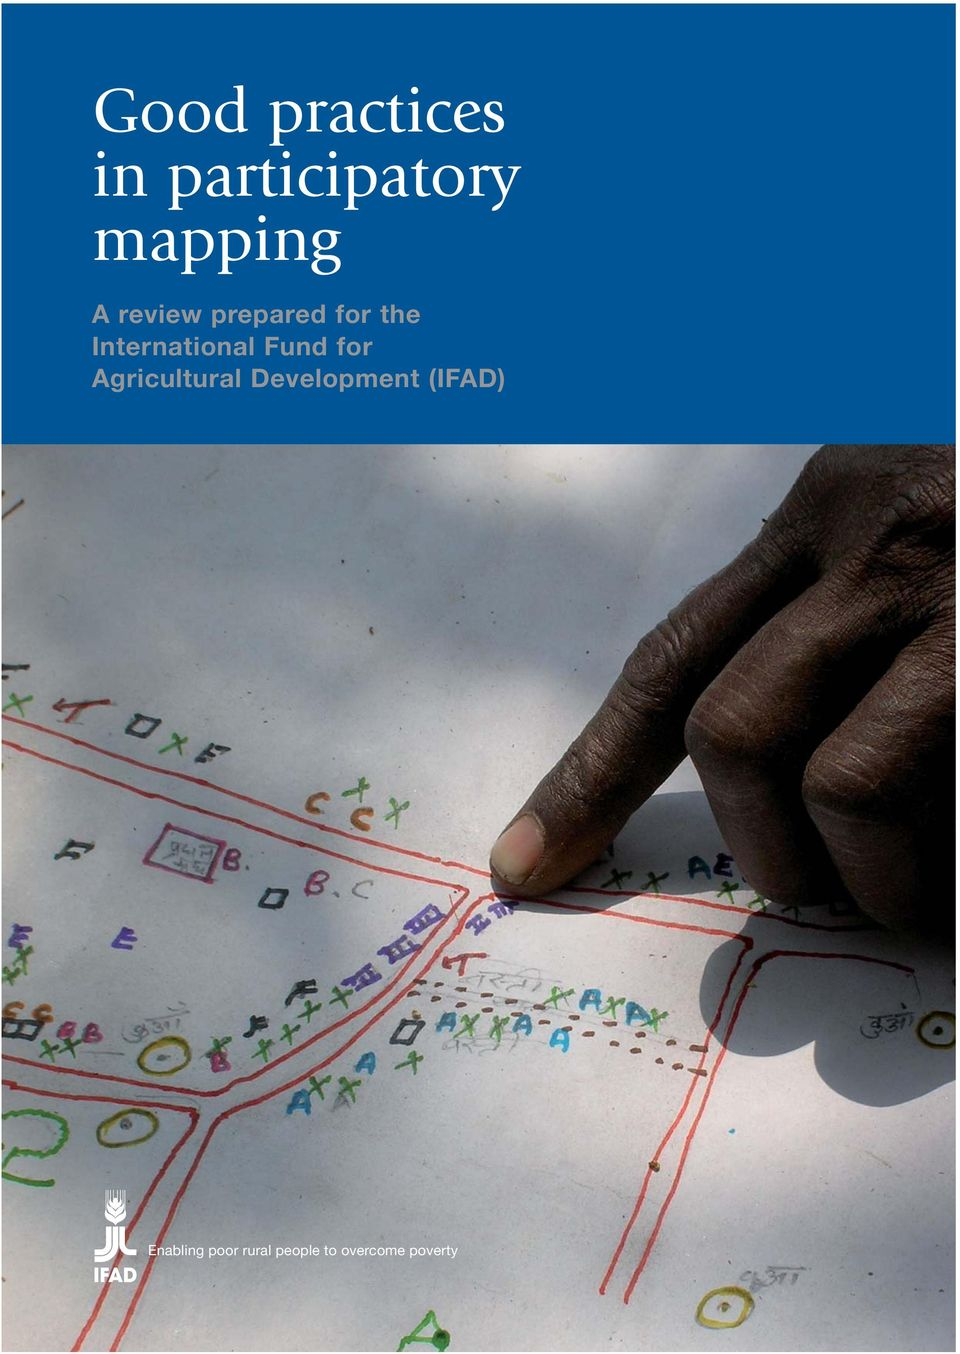 Fund for Agricultural Development (IFAD)